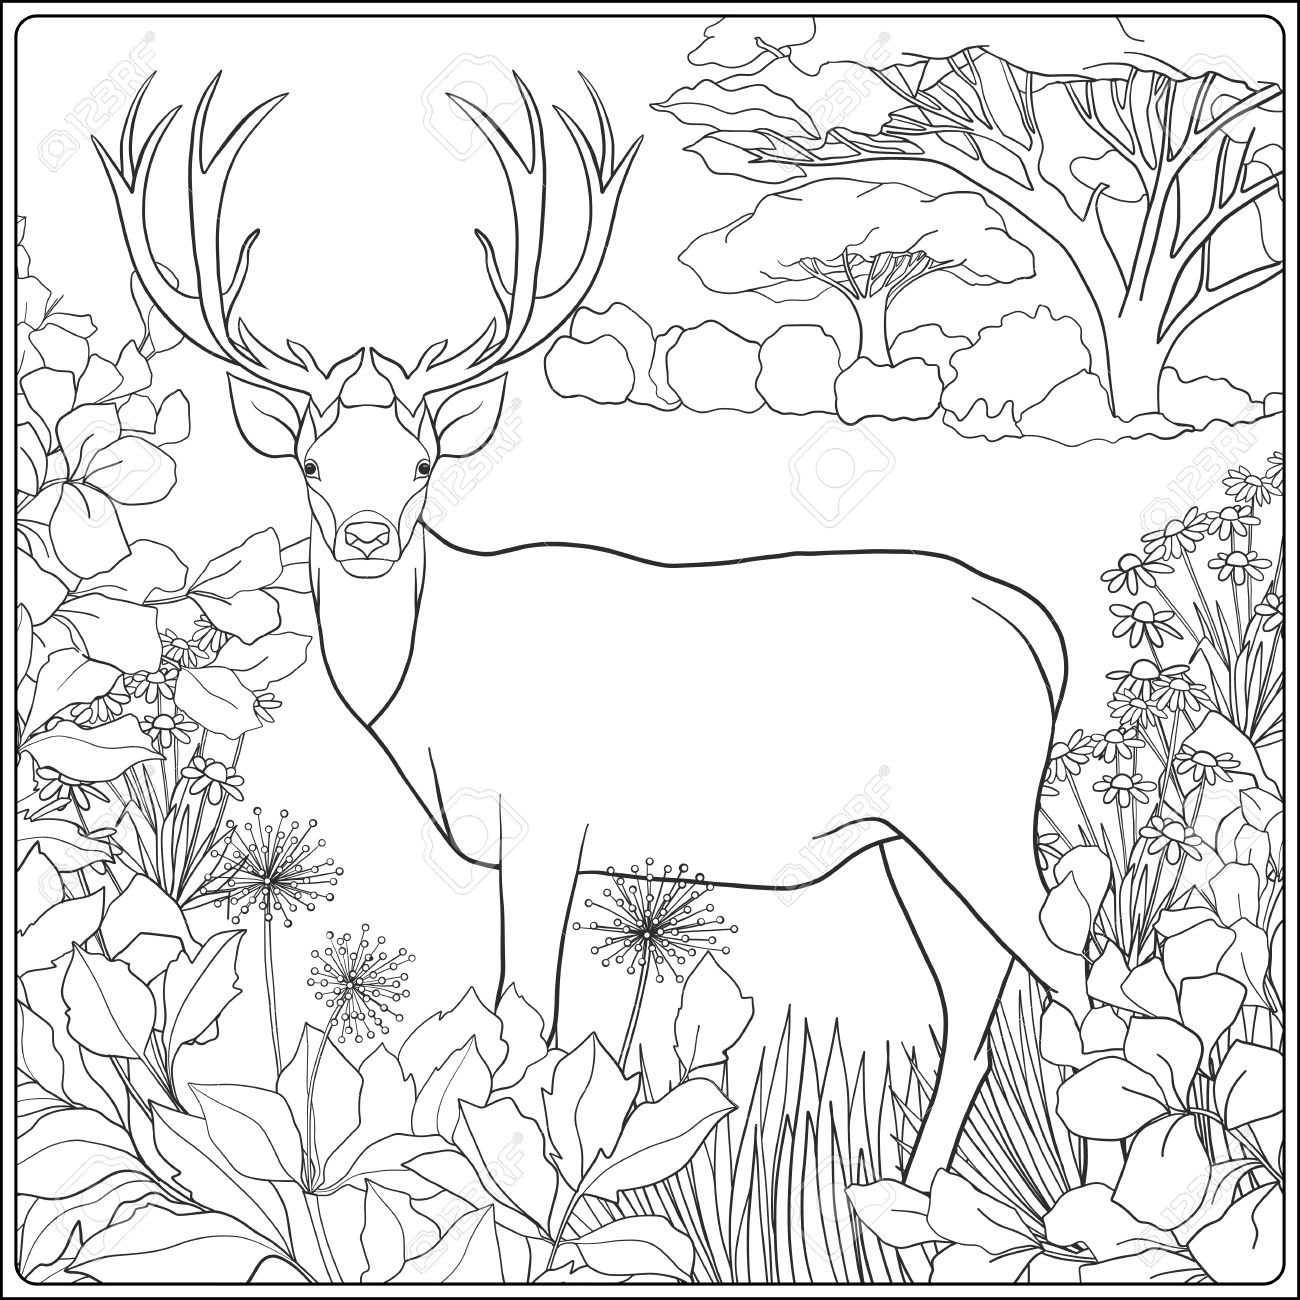 Delightful Coloring Page With Deer In Forest. Coloring Book For Adult And Older  Children. Vector